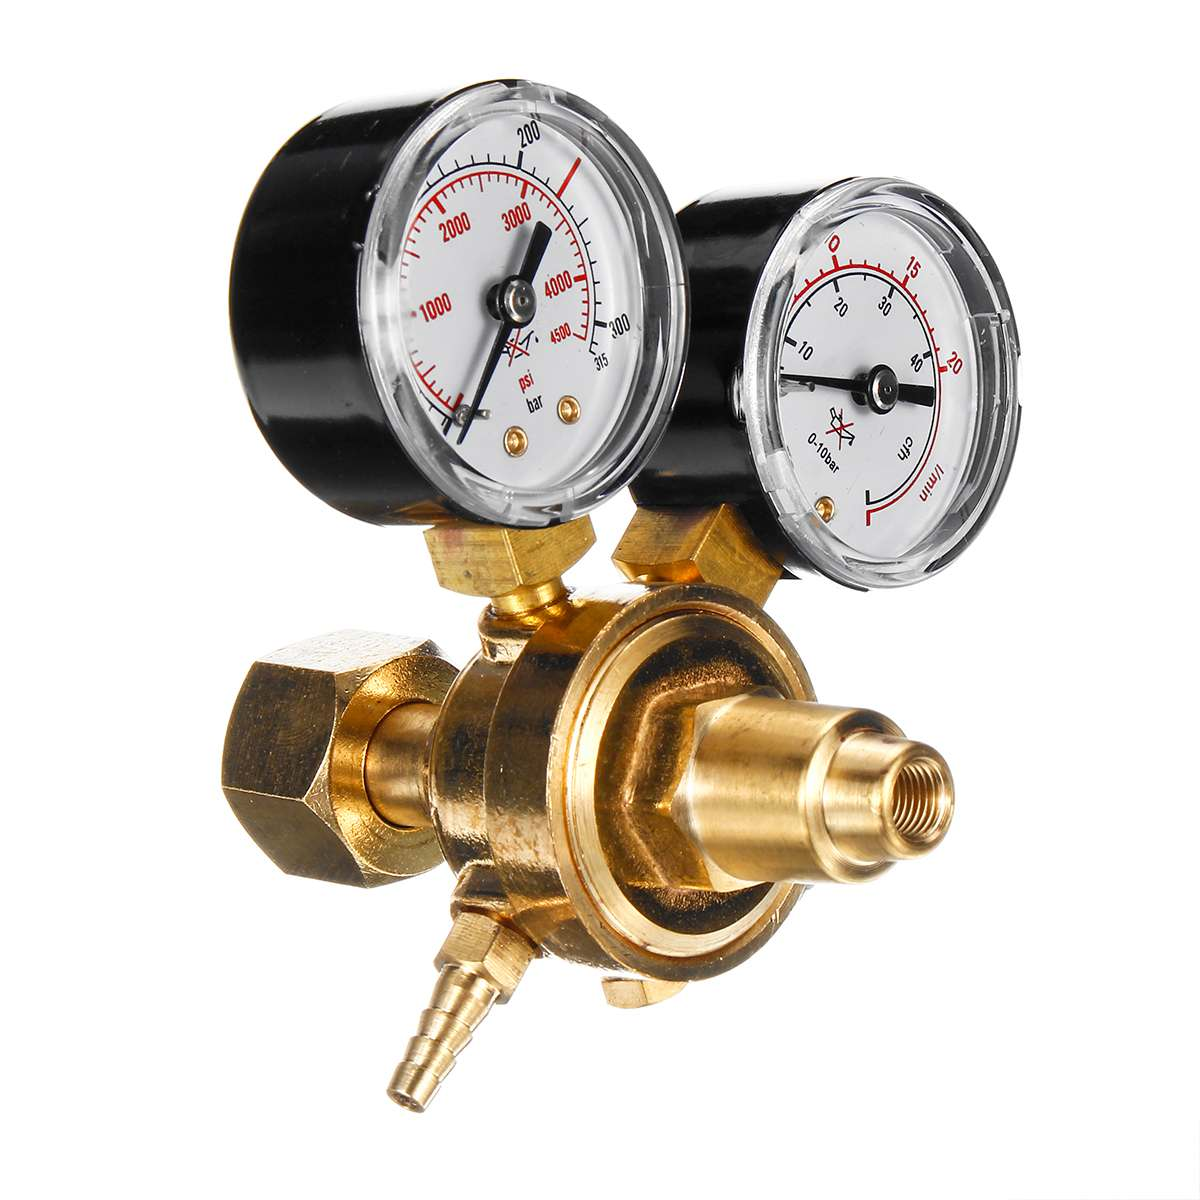 0-25MPa Argon CO2 Pressure Reducer Flow Control Valve Gauge Welding Regulator